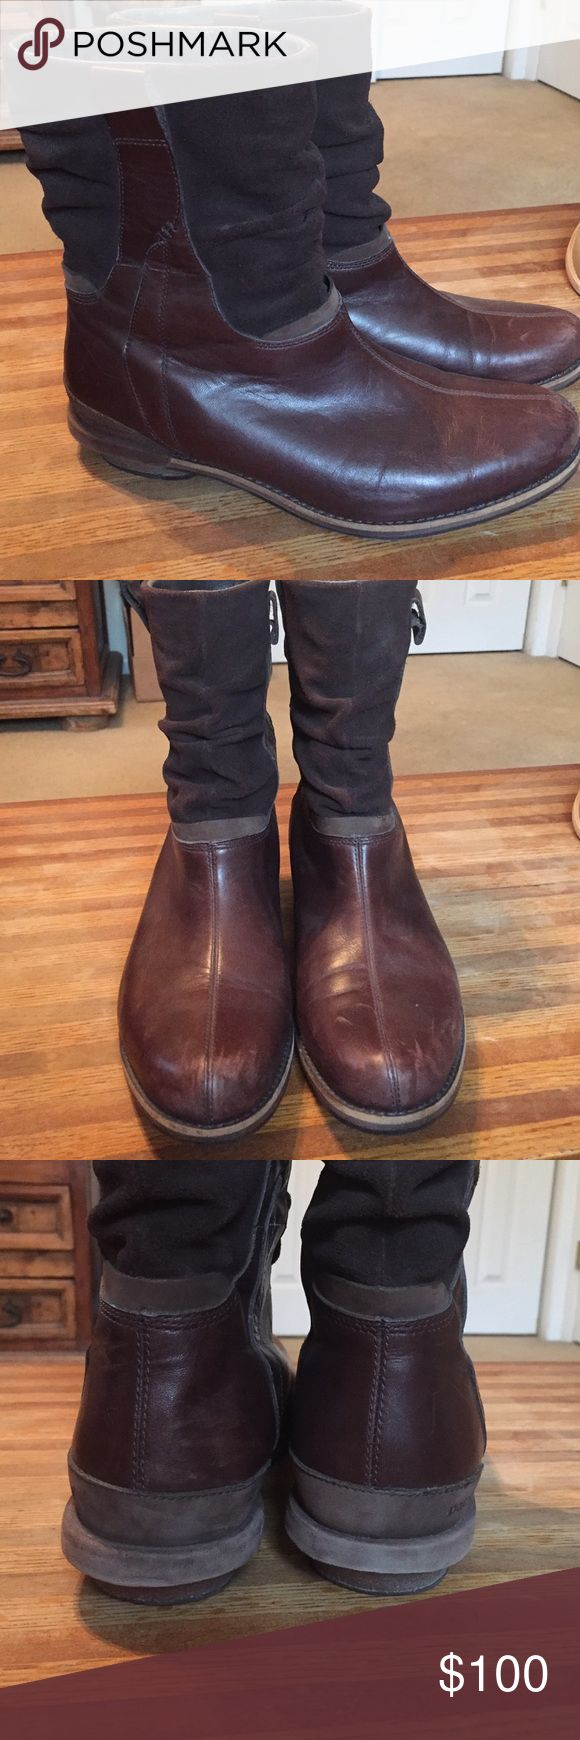 Patagonia leather boots. Brown leader with suede top. Nice condition. Patagonia Shoes Ankle Boots & Booties